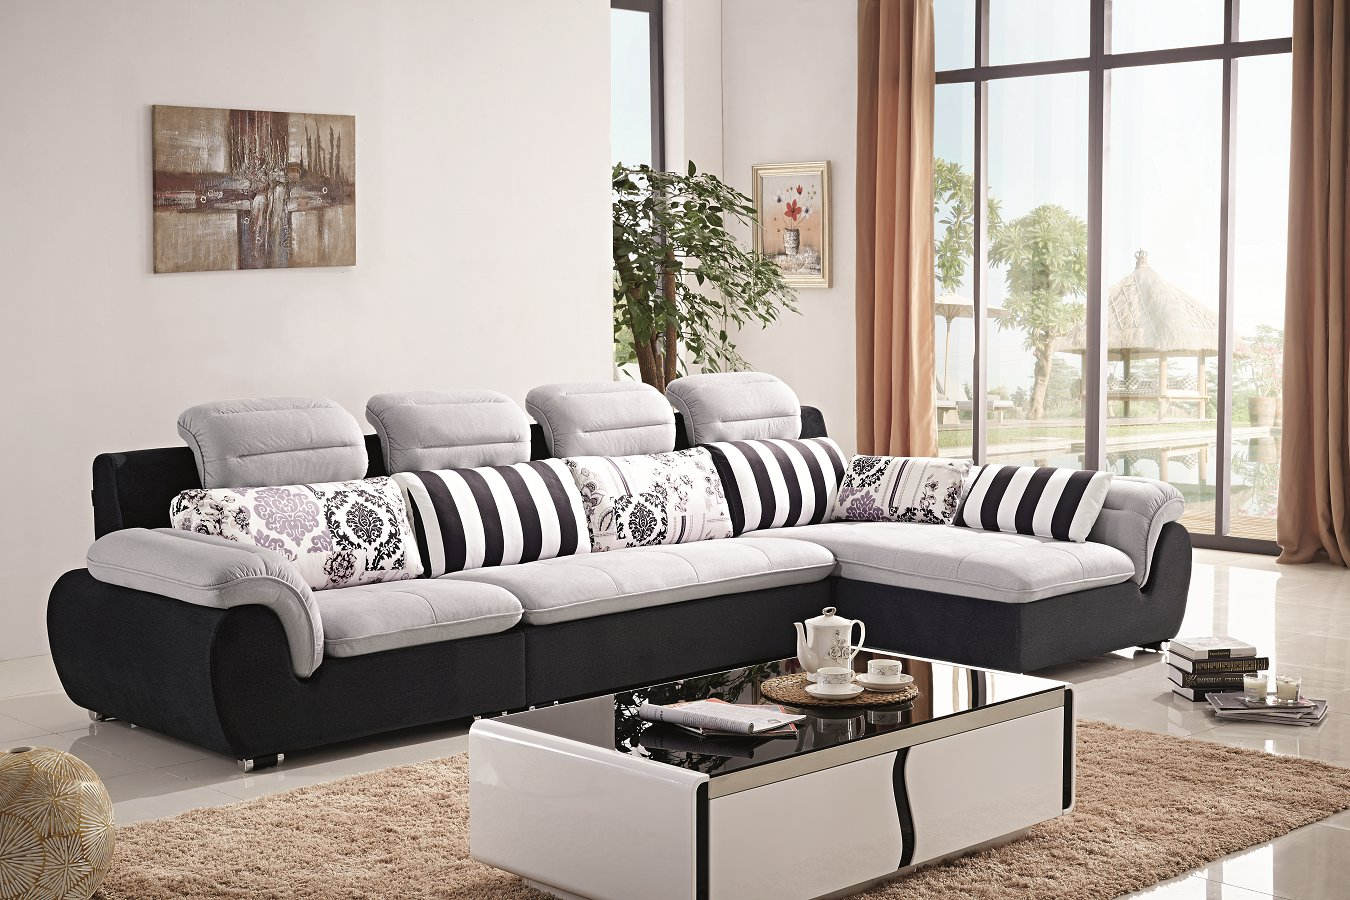 Designer Sectional Sleeper Sofa used office furniture online